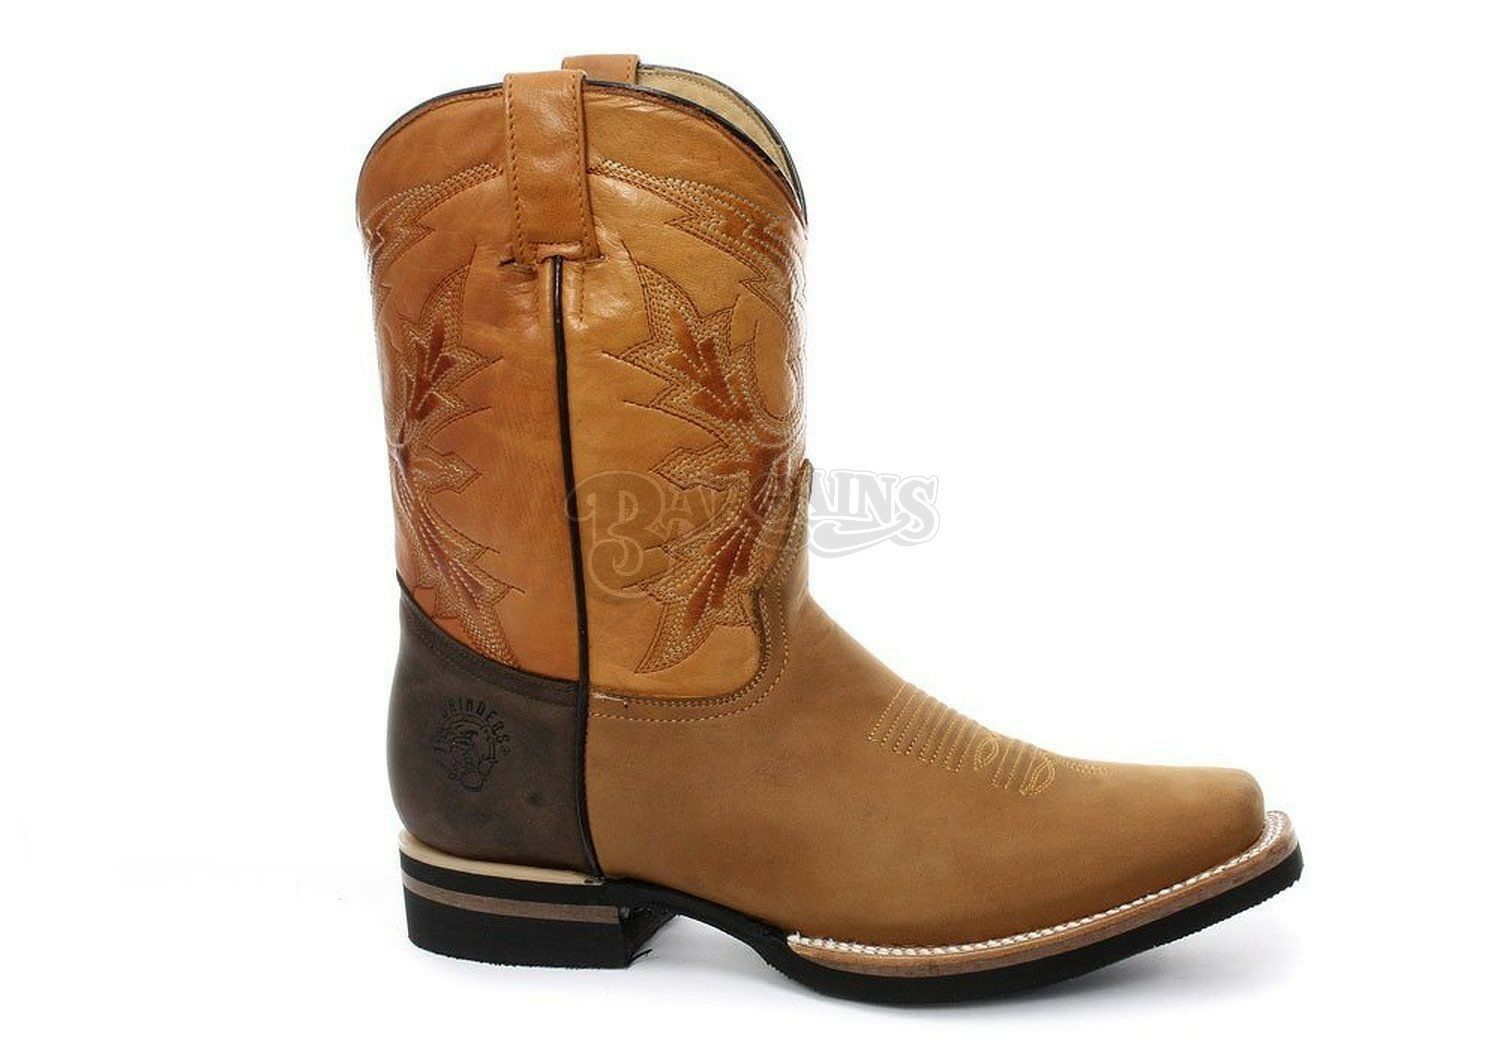 New Grinders El Paso Tan braun Real Leather Cowboy Stiefel Slip On Mid Calf Stiefel